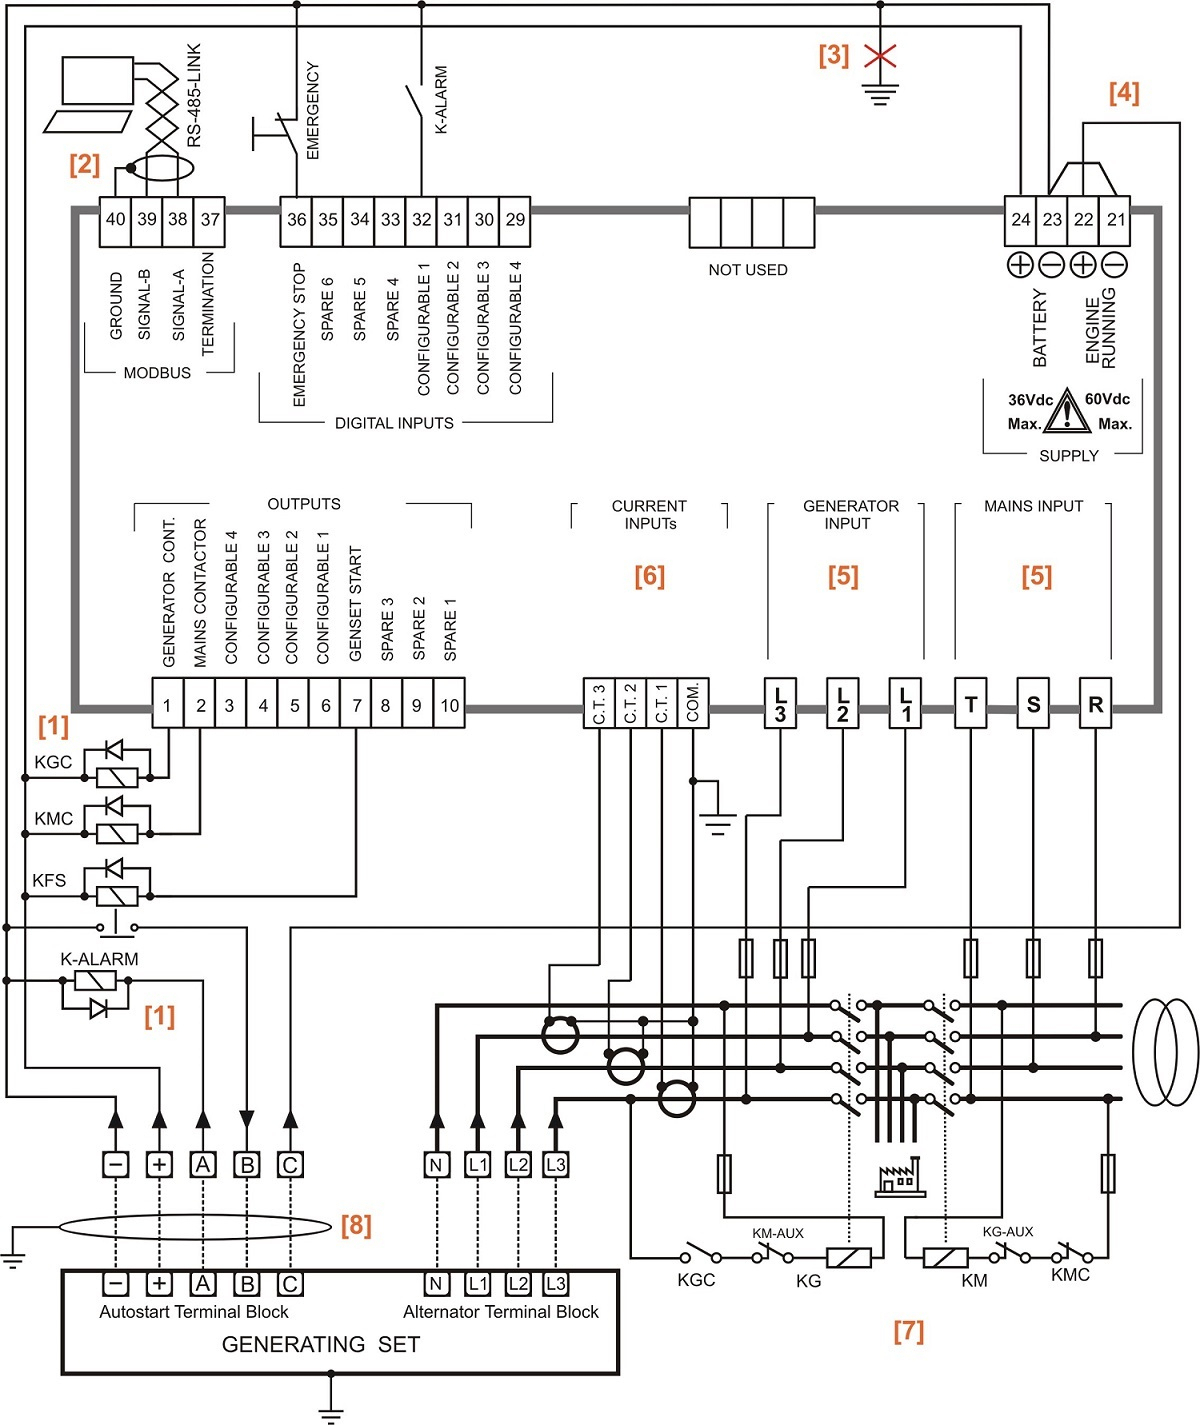 150 Kw Transfer Switch Wiring Diagram For Auto - Wiring Diagrams Lose - Transfer Switch Wiring Diagram